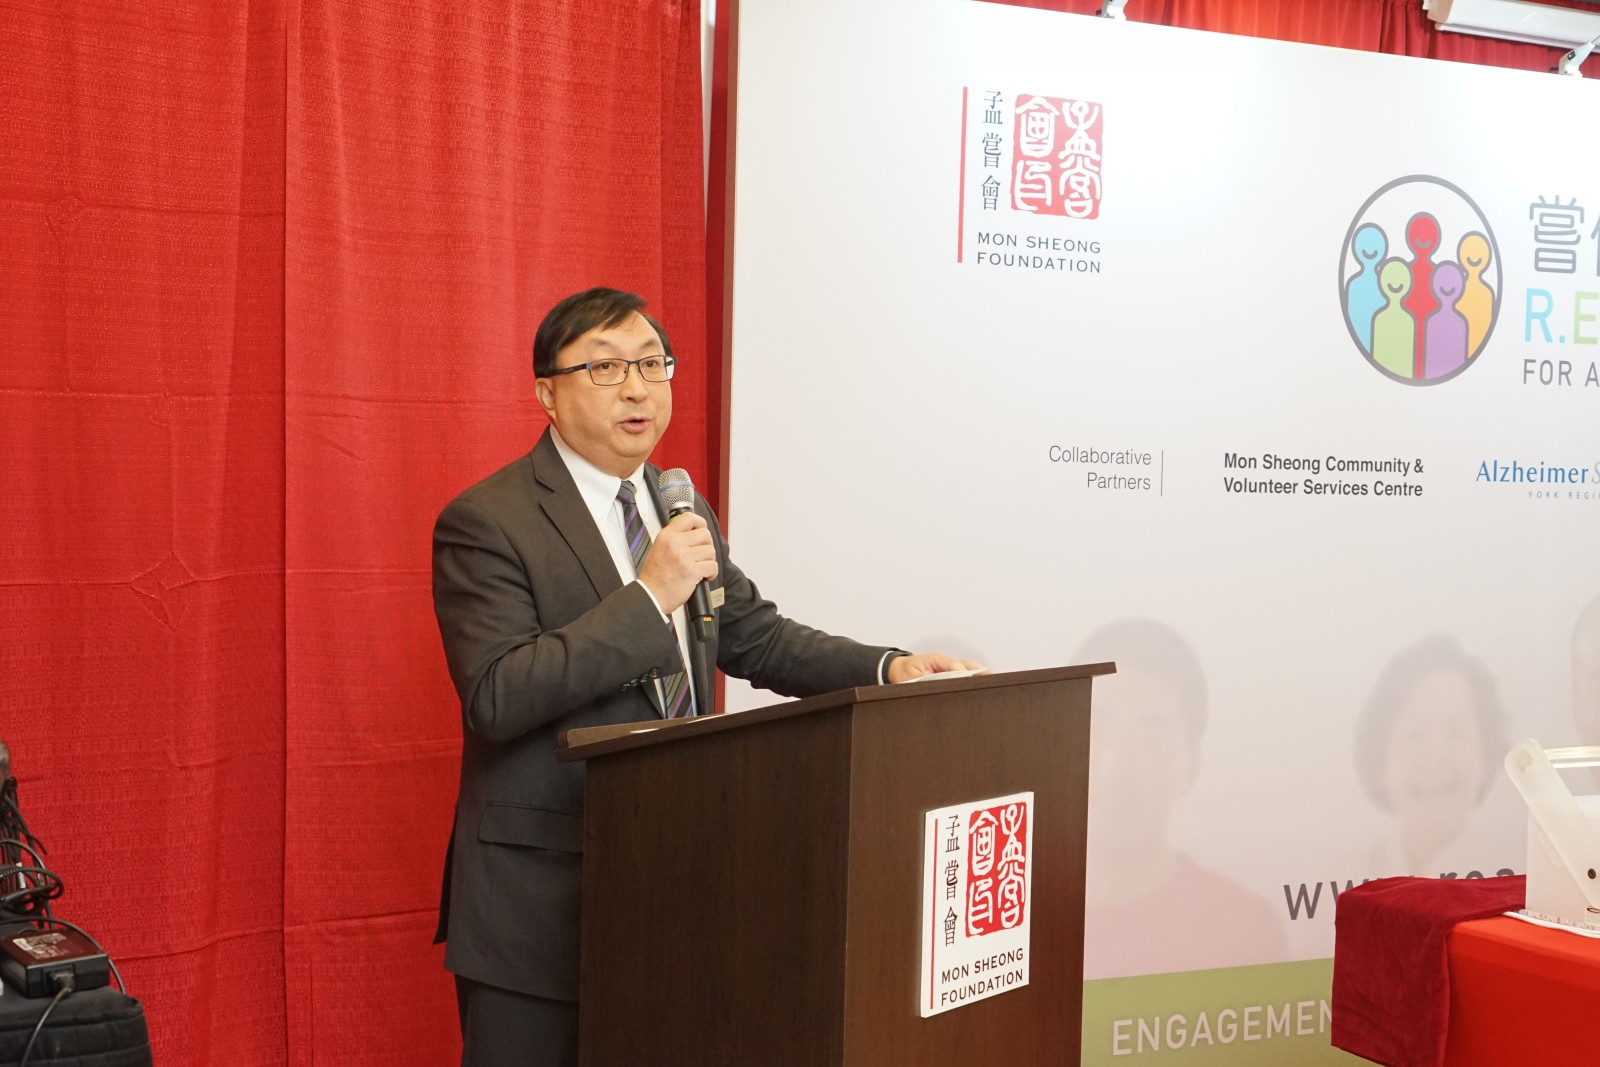 Welcome speech by David Cheng, Vice-President of Mon Sheong Foundation